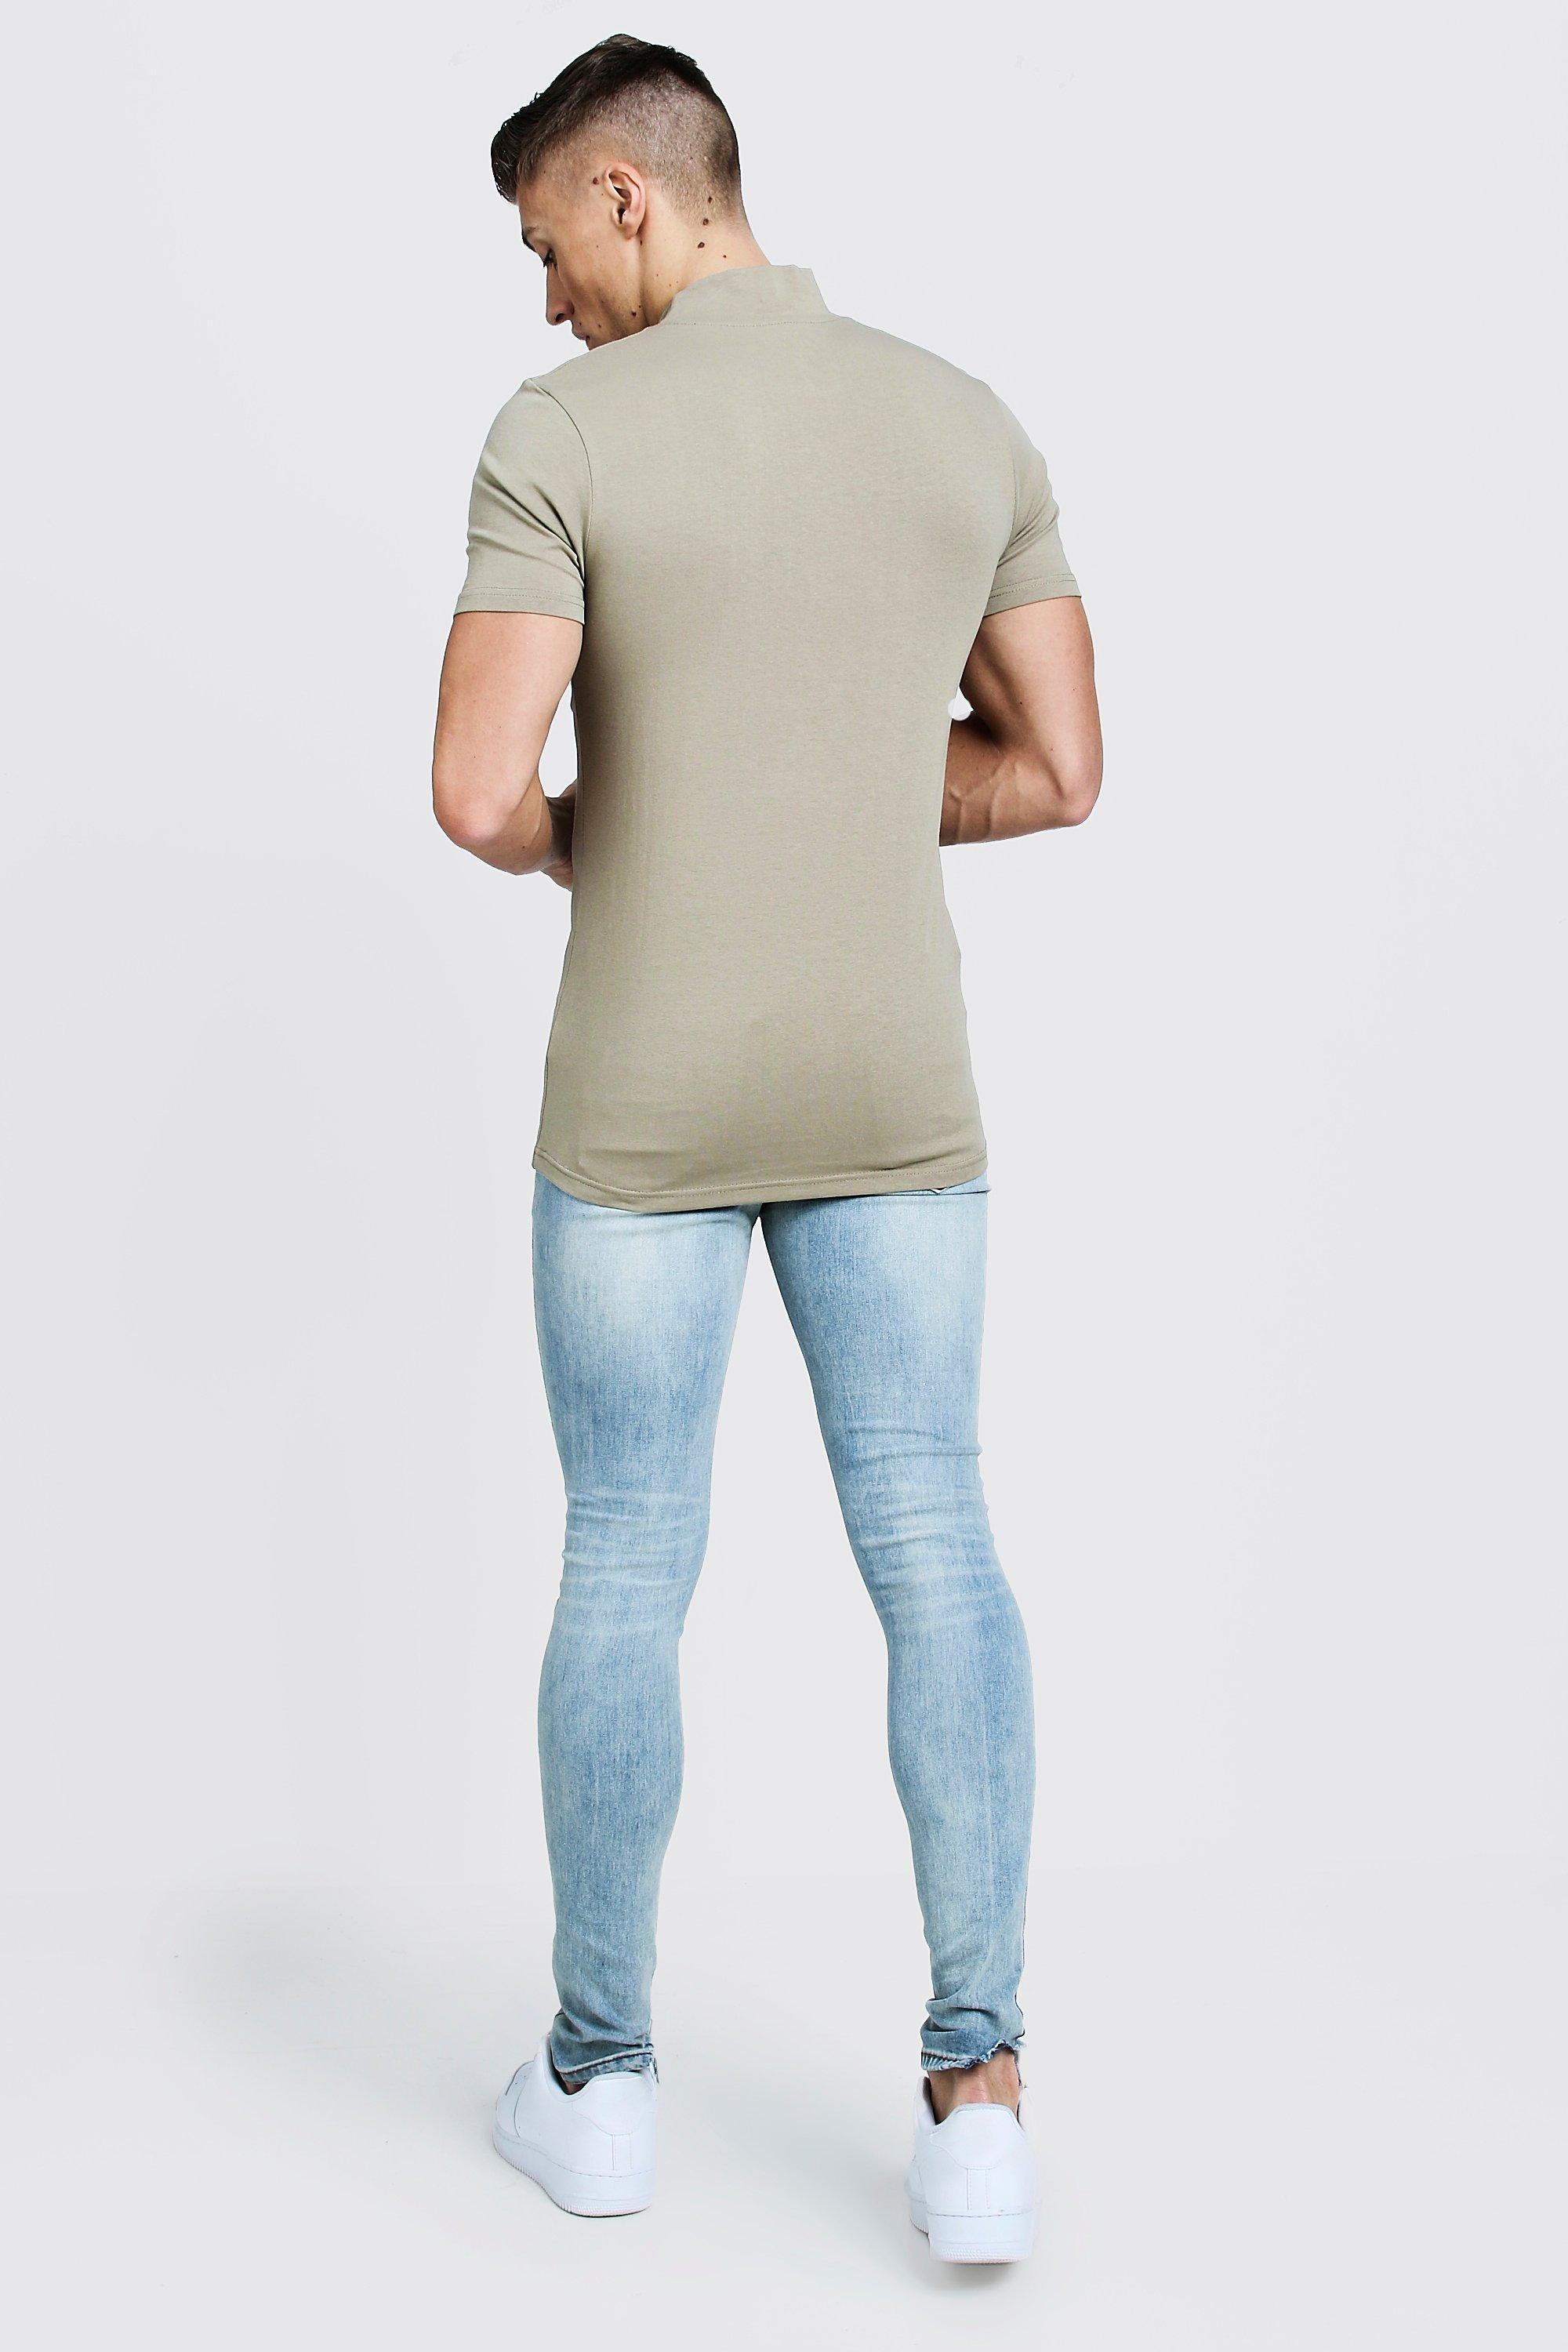 64f8c3fc Boohoo - Natural Muscle Fit T-shirt With Extended Neck for Men - Lyst. View  fullscreen